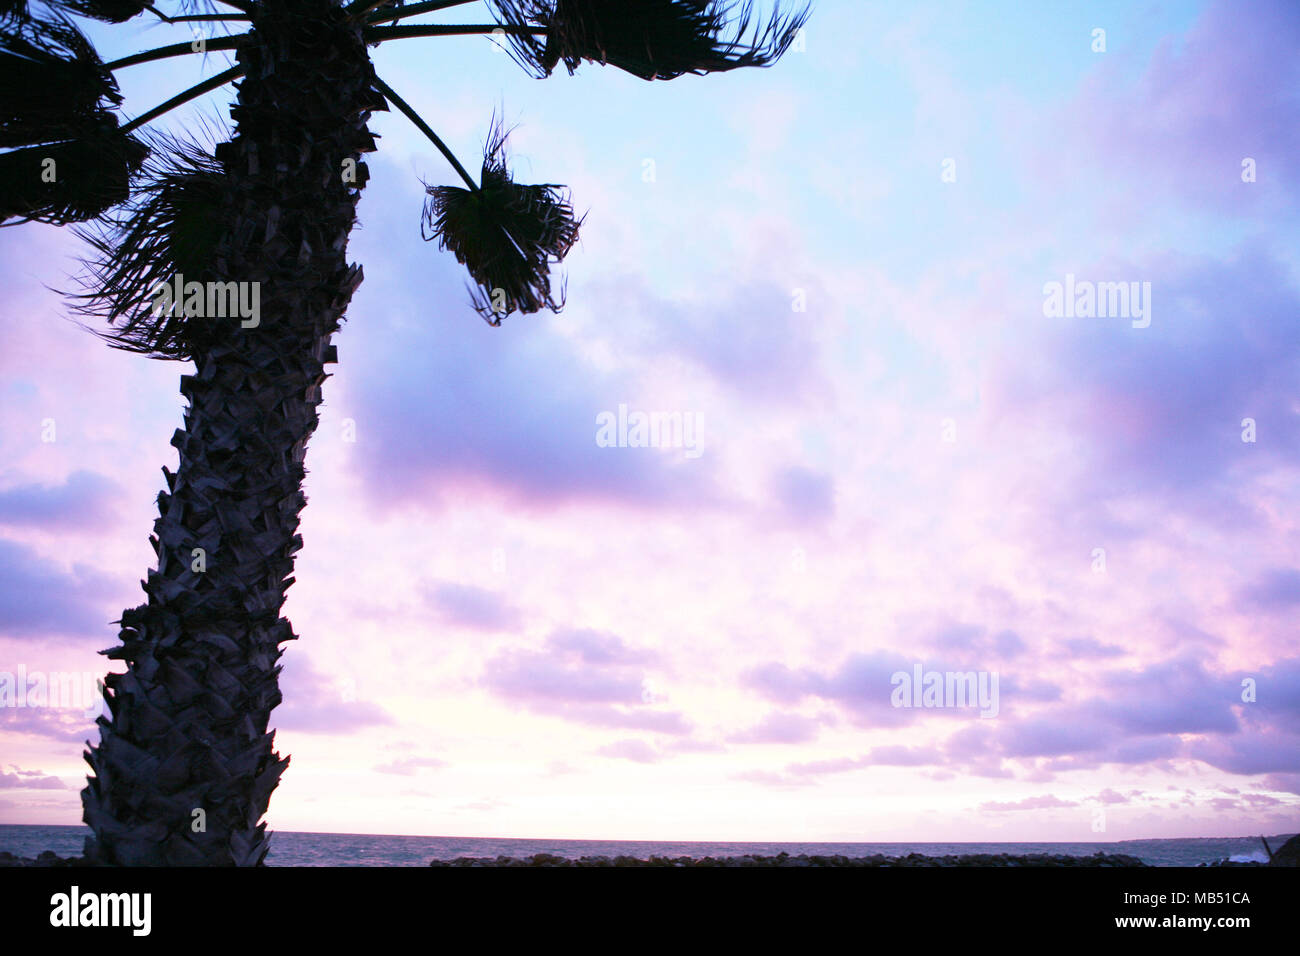 Palm tree Sunset at sea with violet clouds - Stock Image